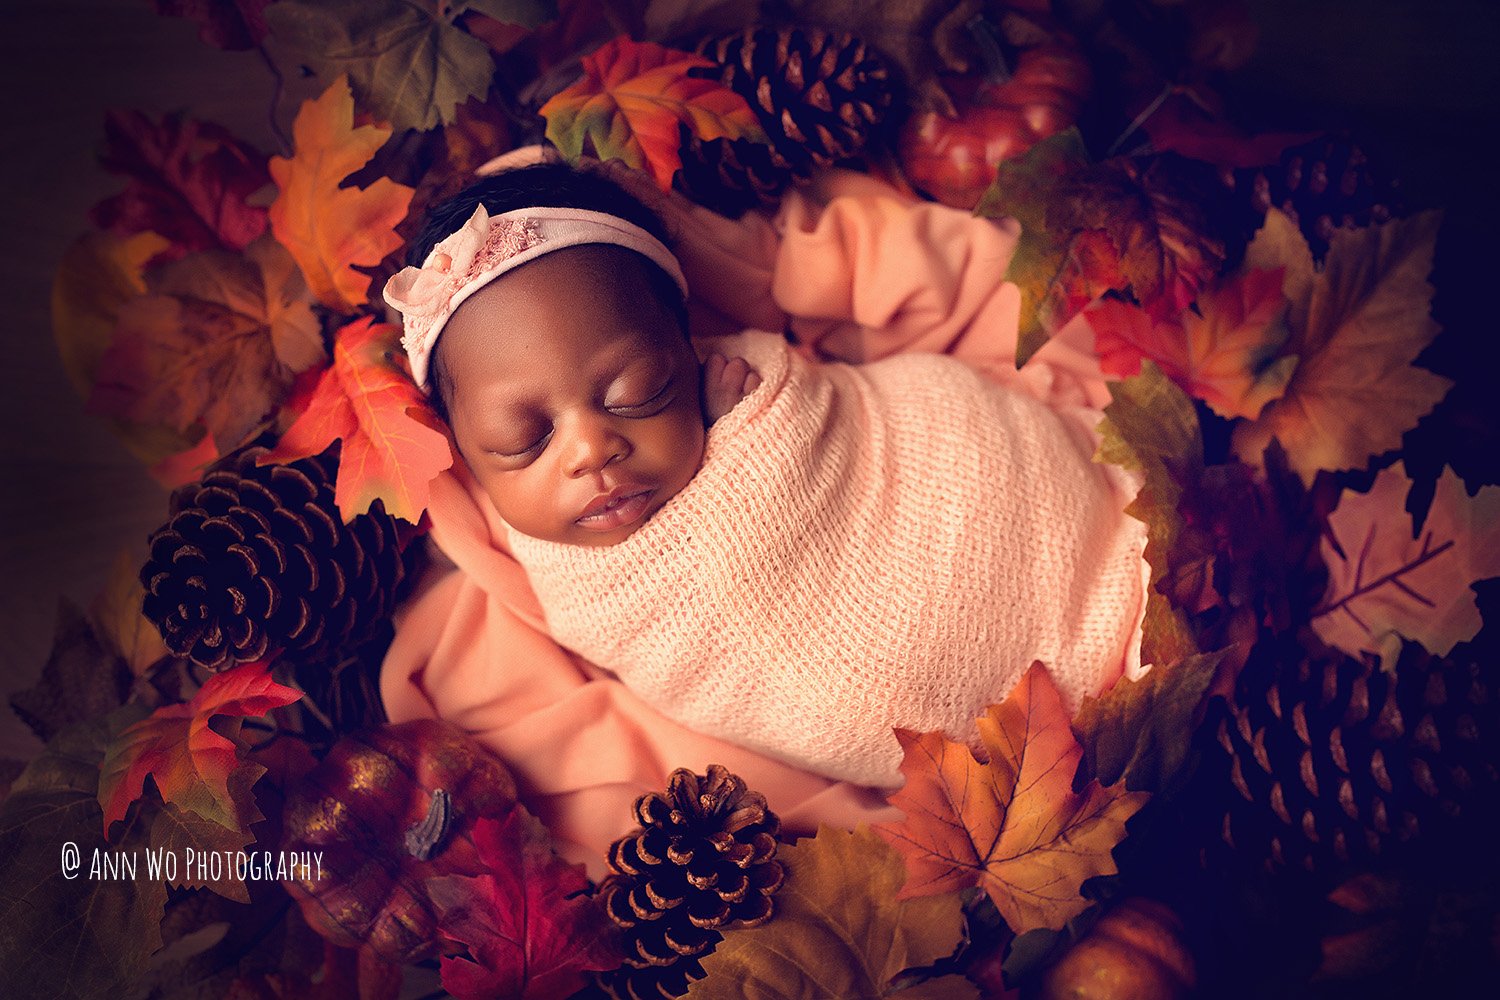 Newborn photography in London by Ann Wo autumn leaves set up